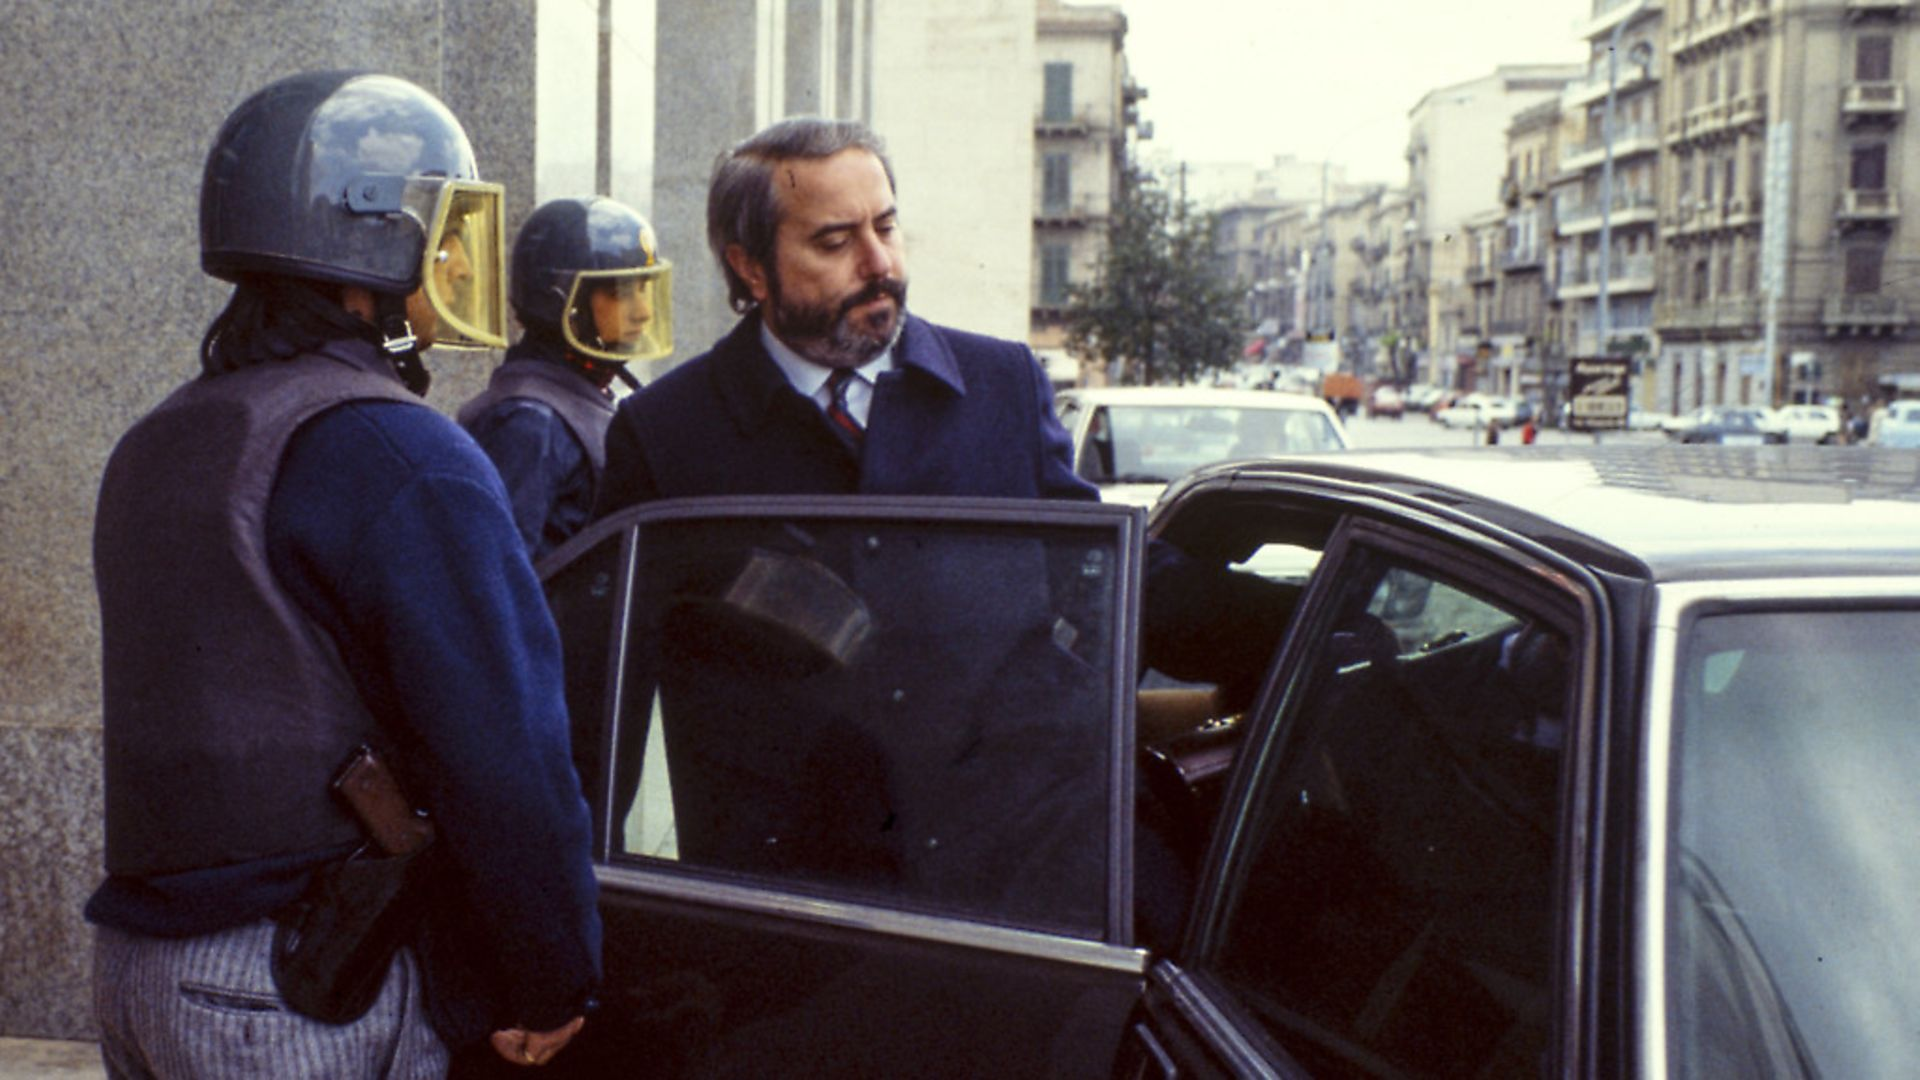 The Italian judge Giovanni Falcone is escorted by police out of the Court of Palermo, Italy, on May 16, 1985. Giovanni Falcone was killed by the Mafia in 1992. Photo: Vittoriano Rastelli/Corbis via Getty Images - Credit: Getty Images